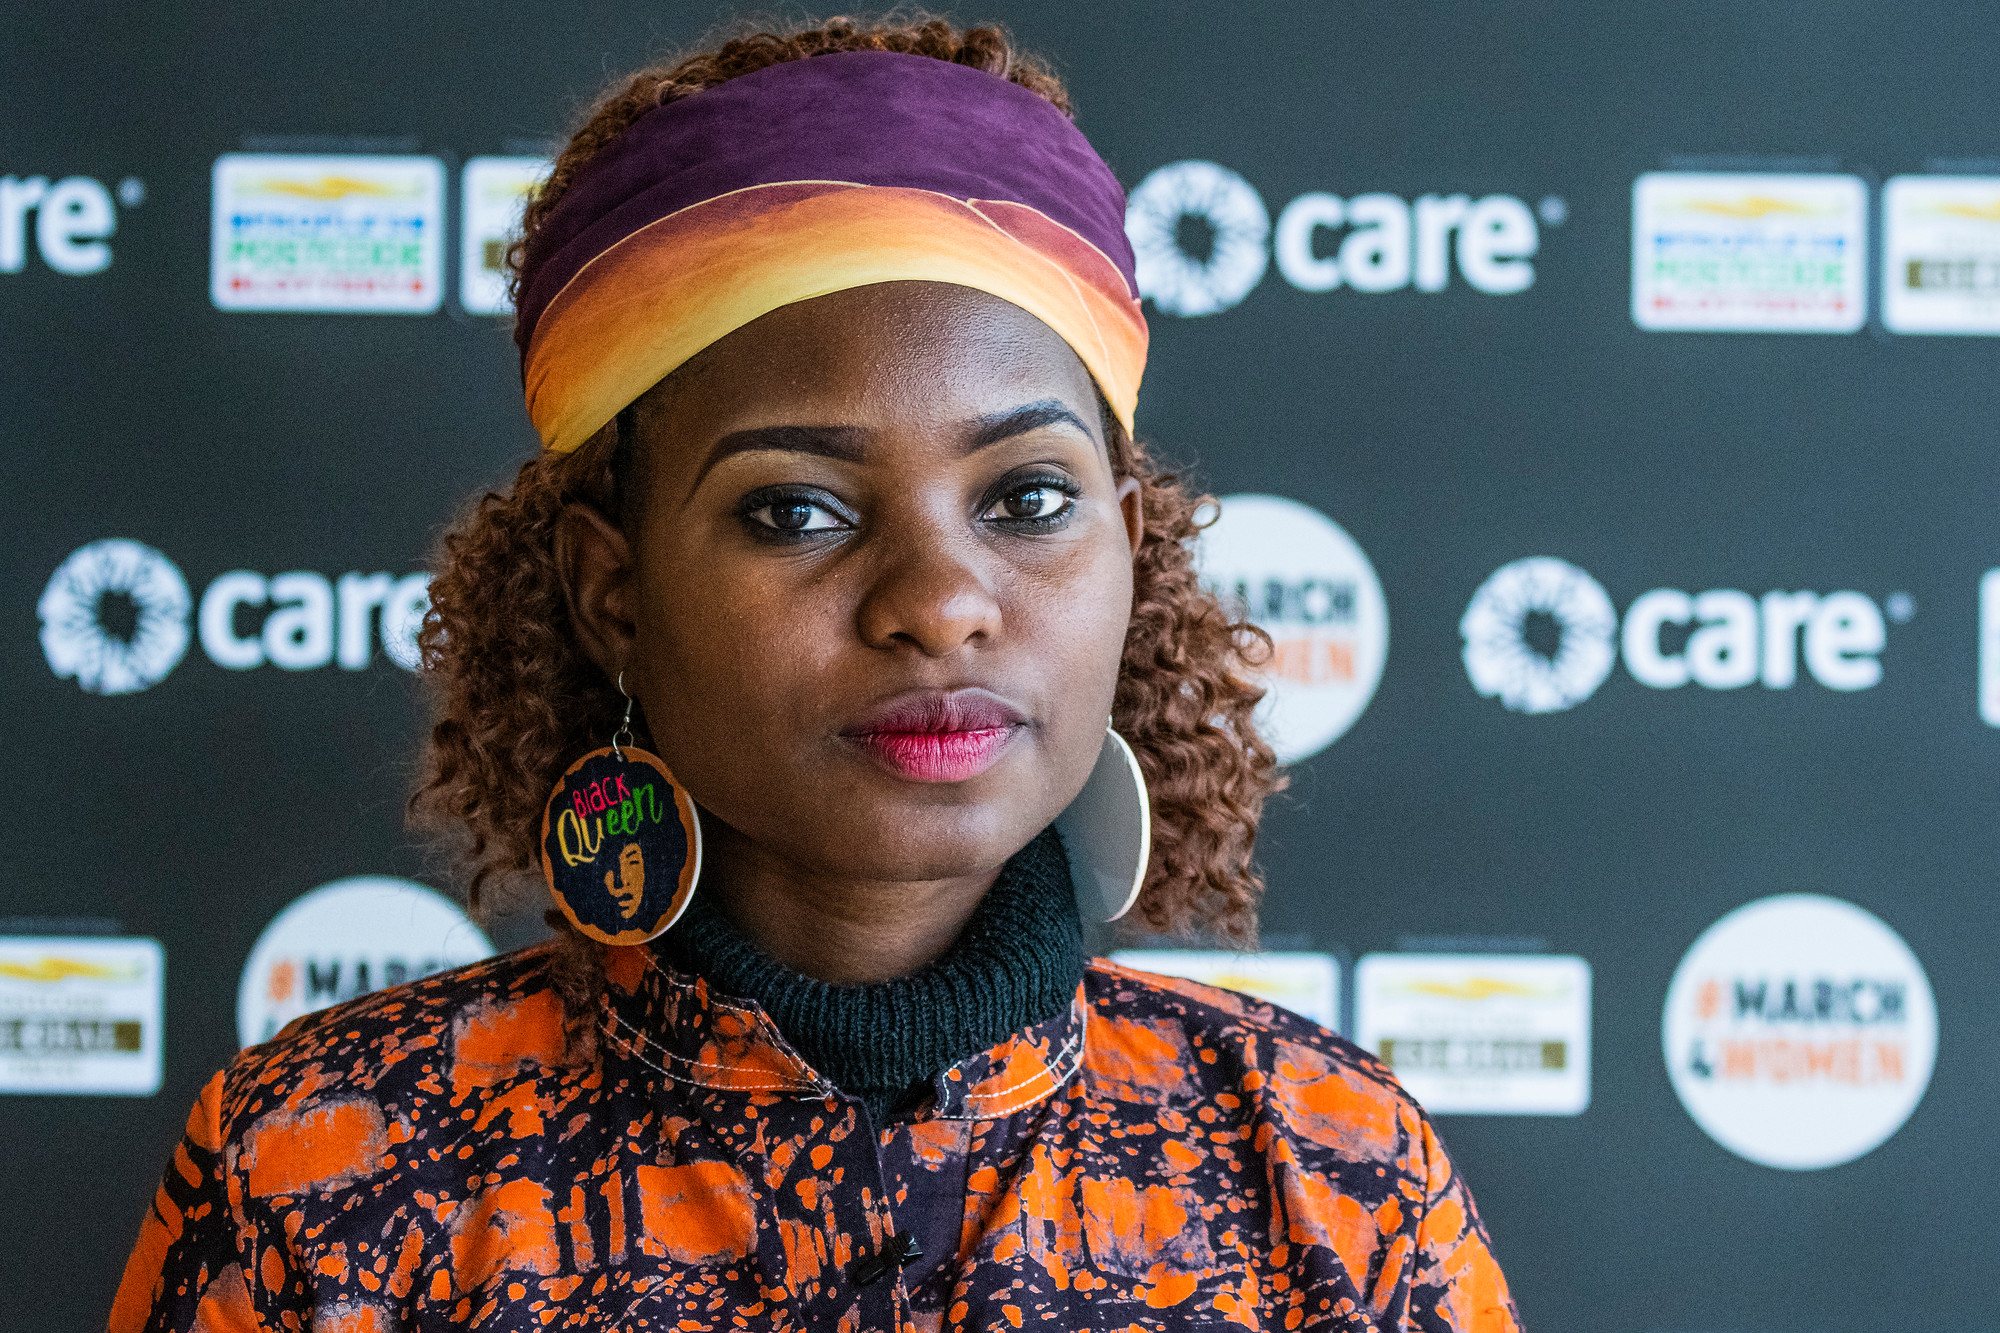 A woman climate activist in a headband stands in front of a CARE-branded backdrop